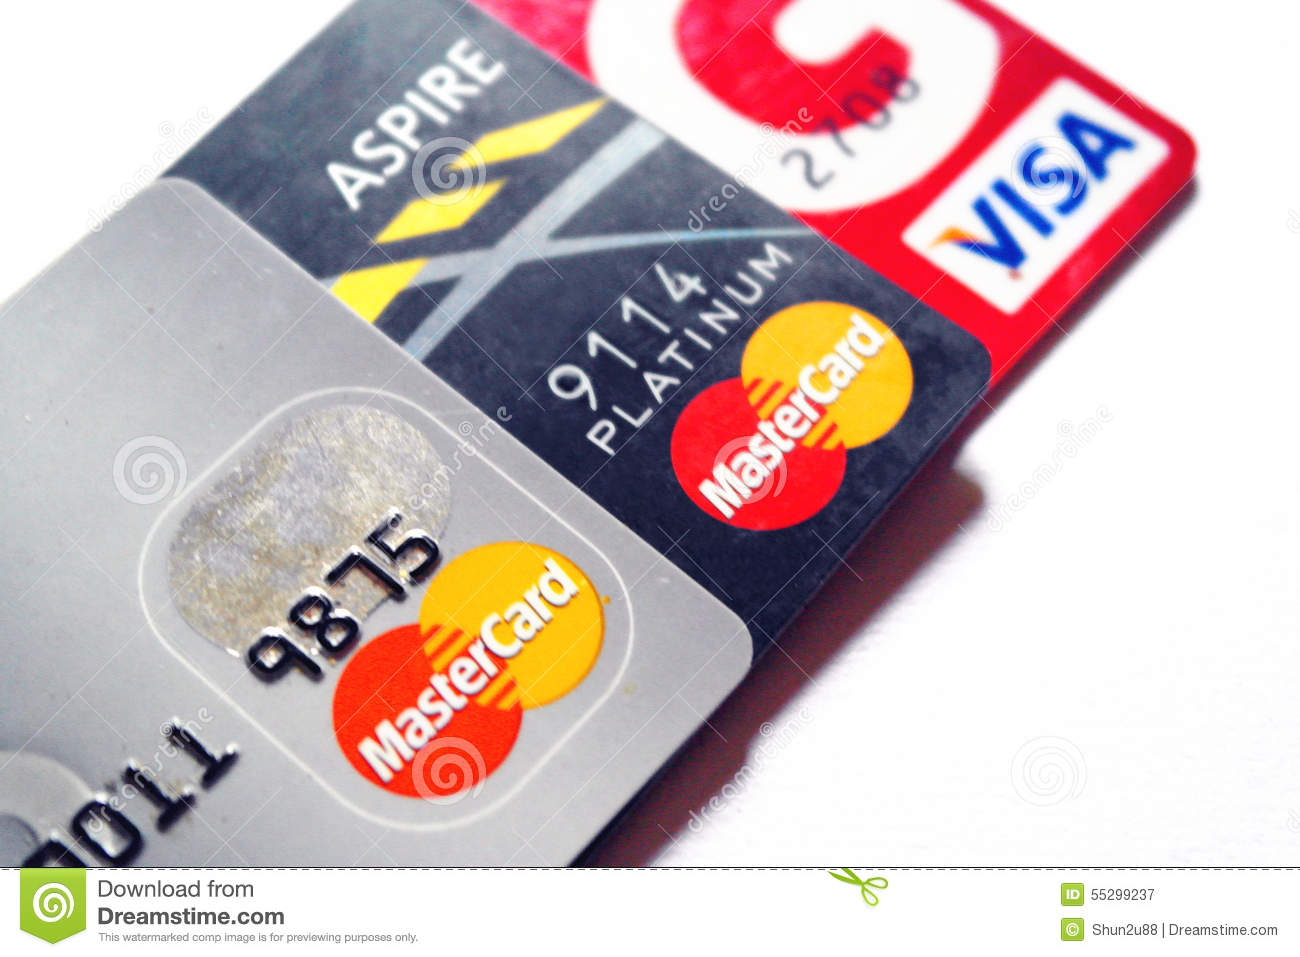 how to improve credit score fast to buy a house